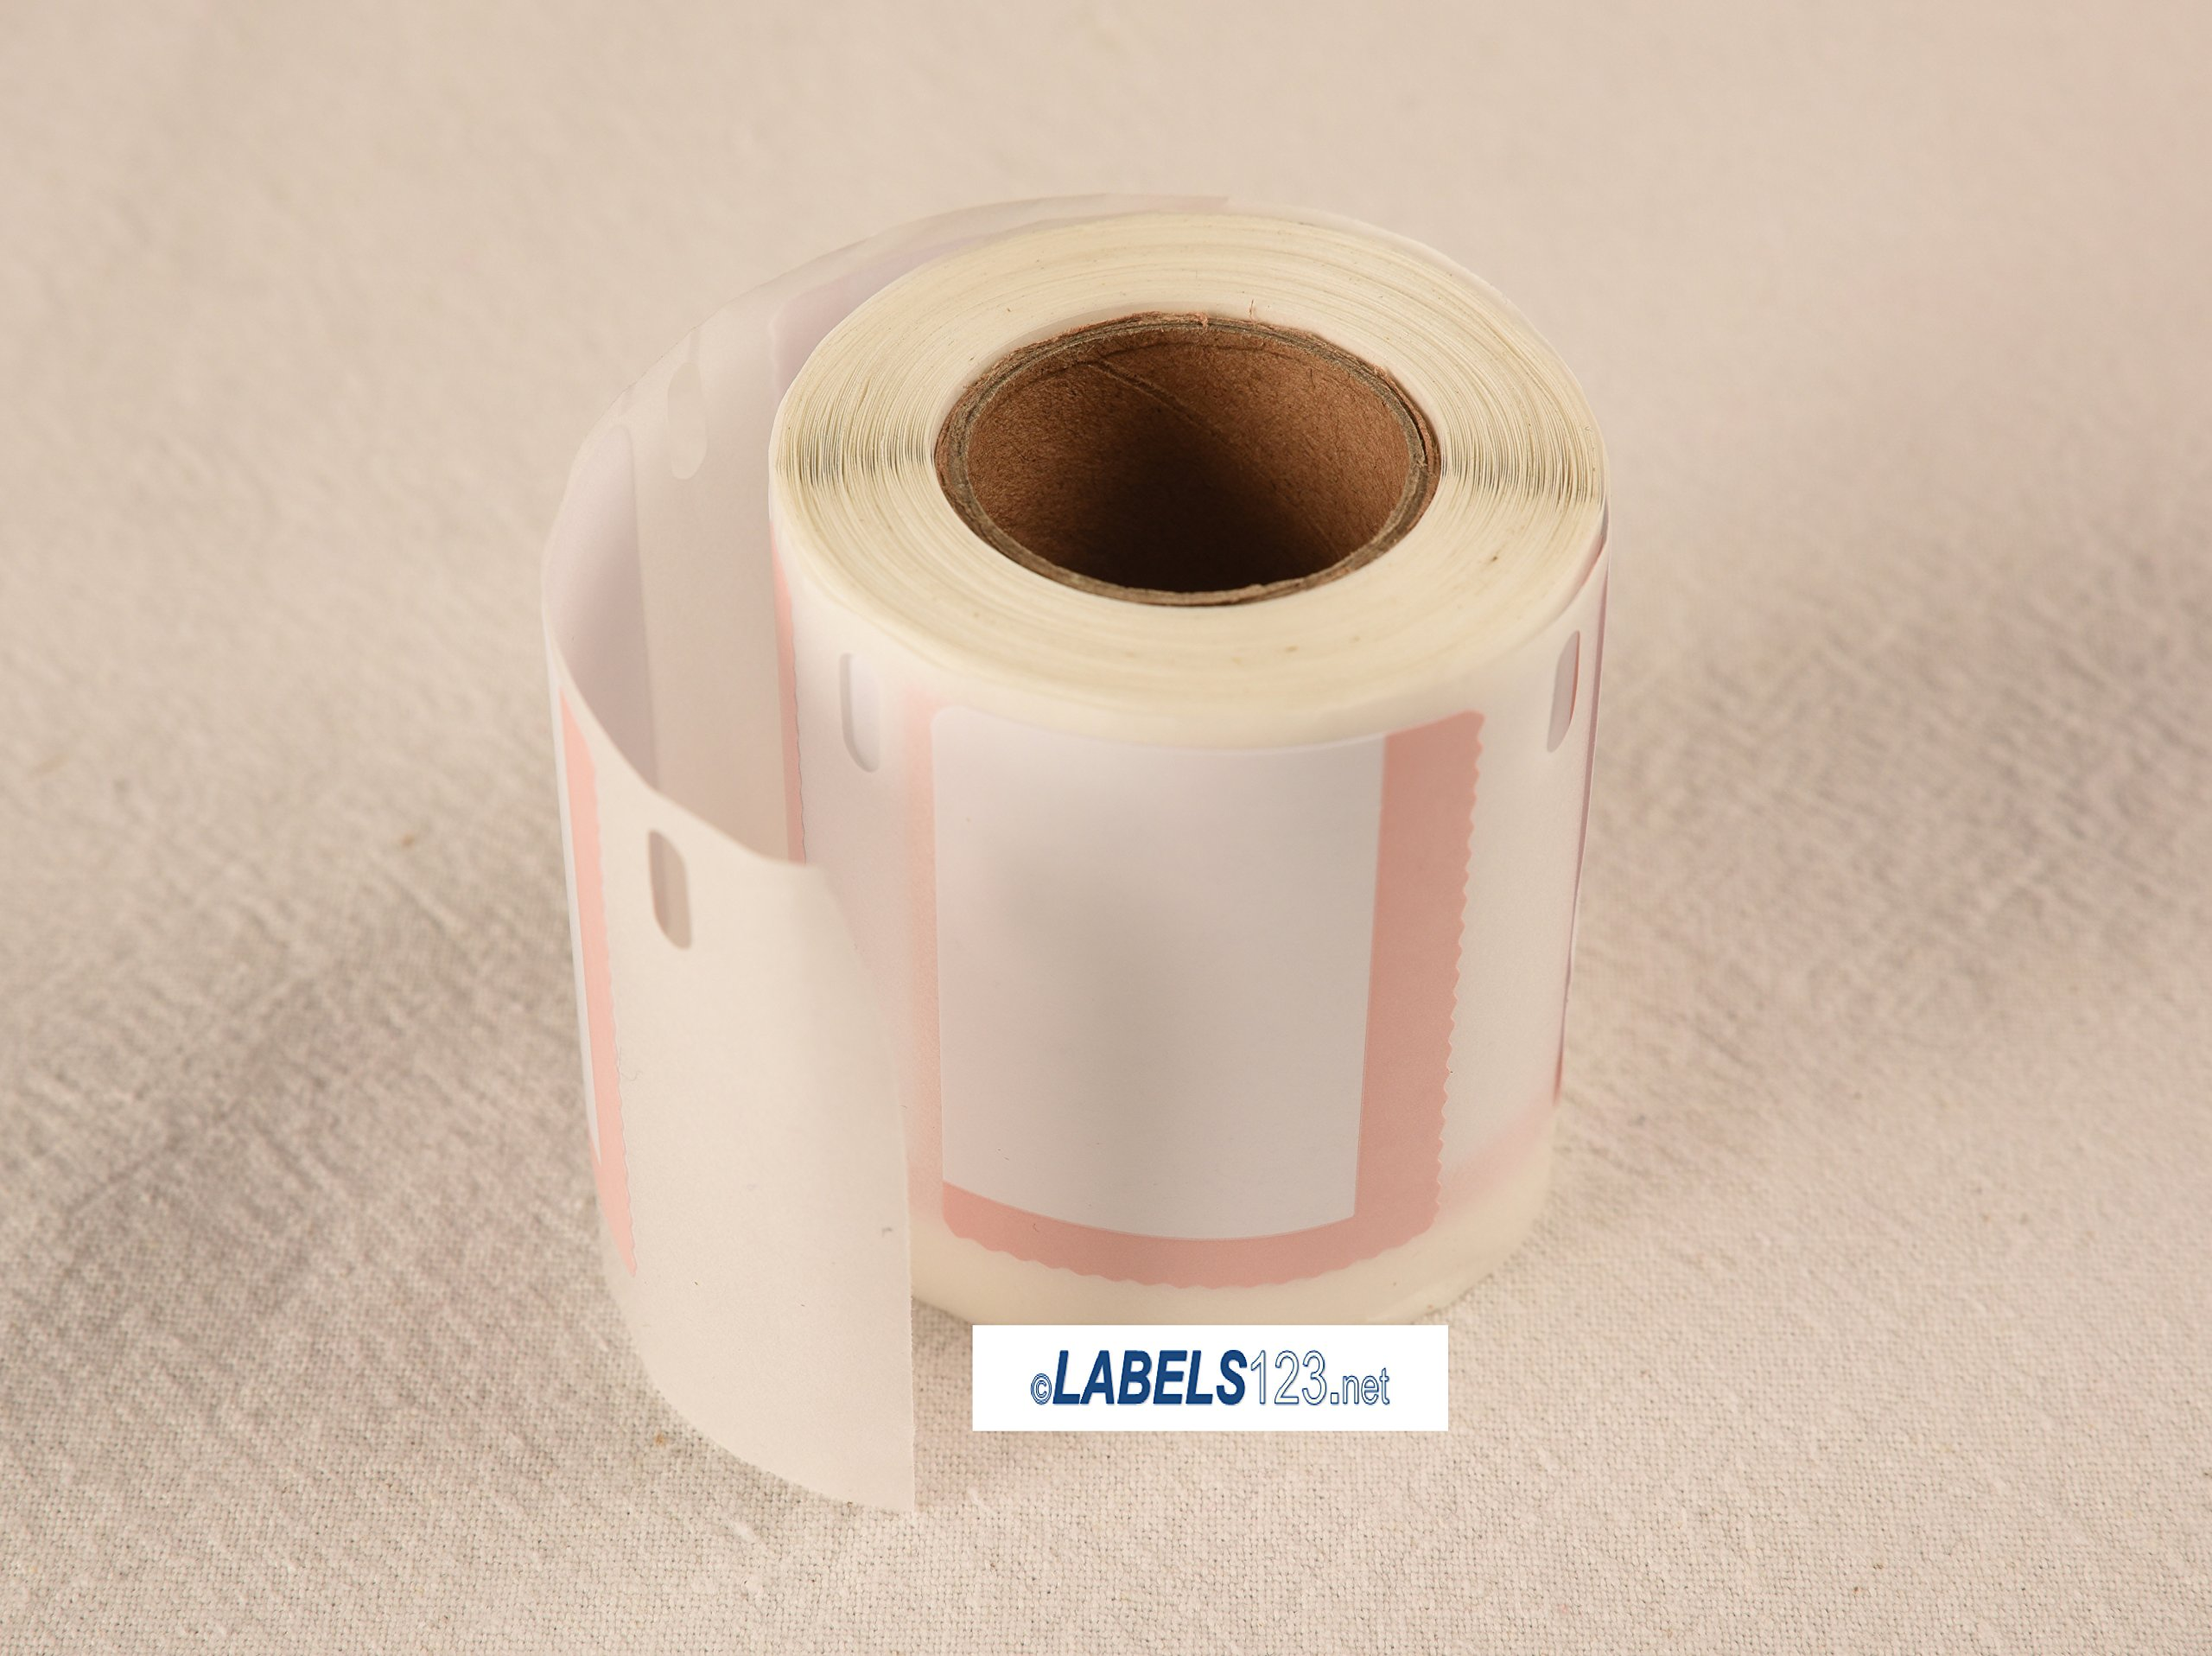 20 Rolls of DYMO Compatible 30915 Internet Postage Stamp Mail Labels (1-5/8'' x 1-1/4'') - 700 labels per roll. by Labels123